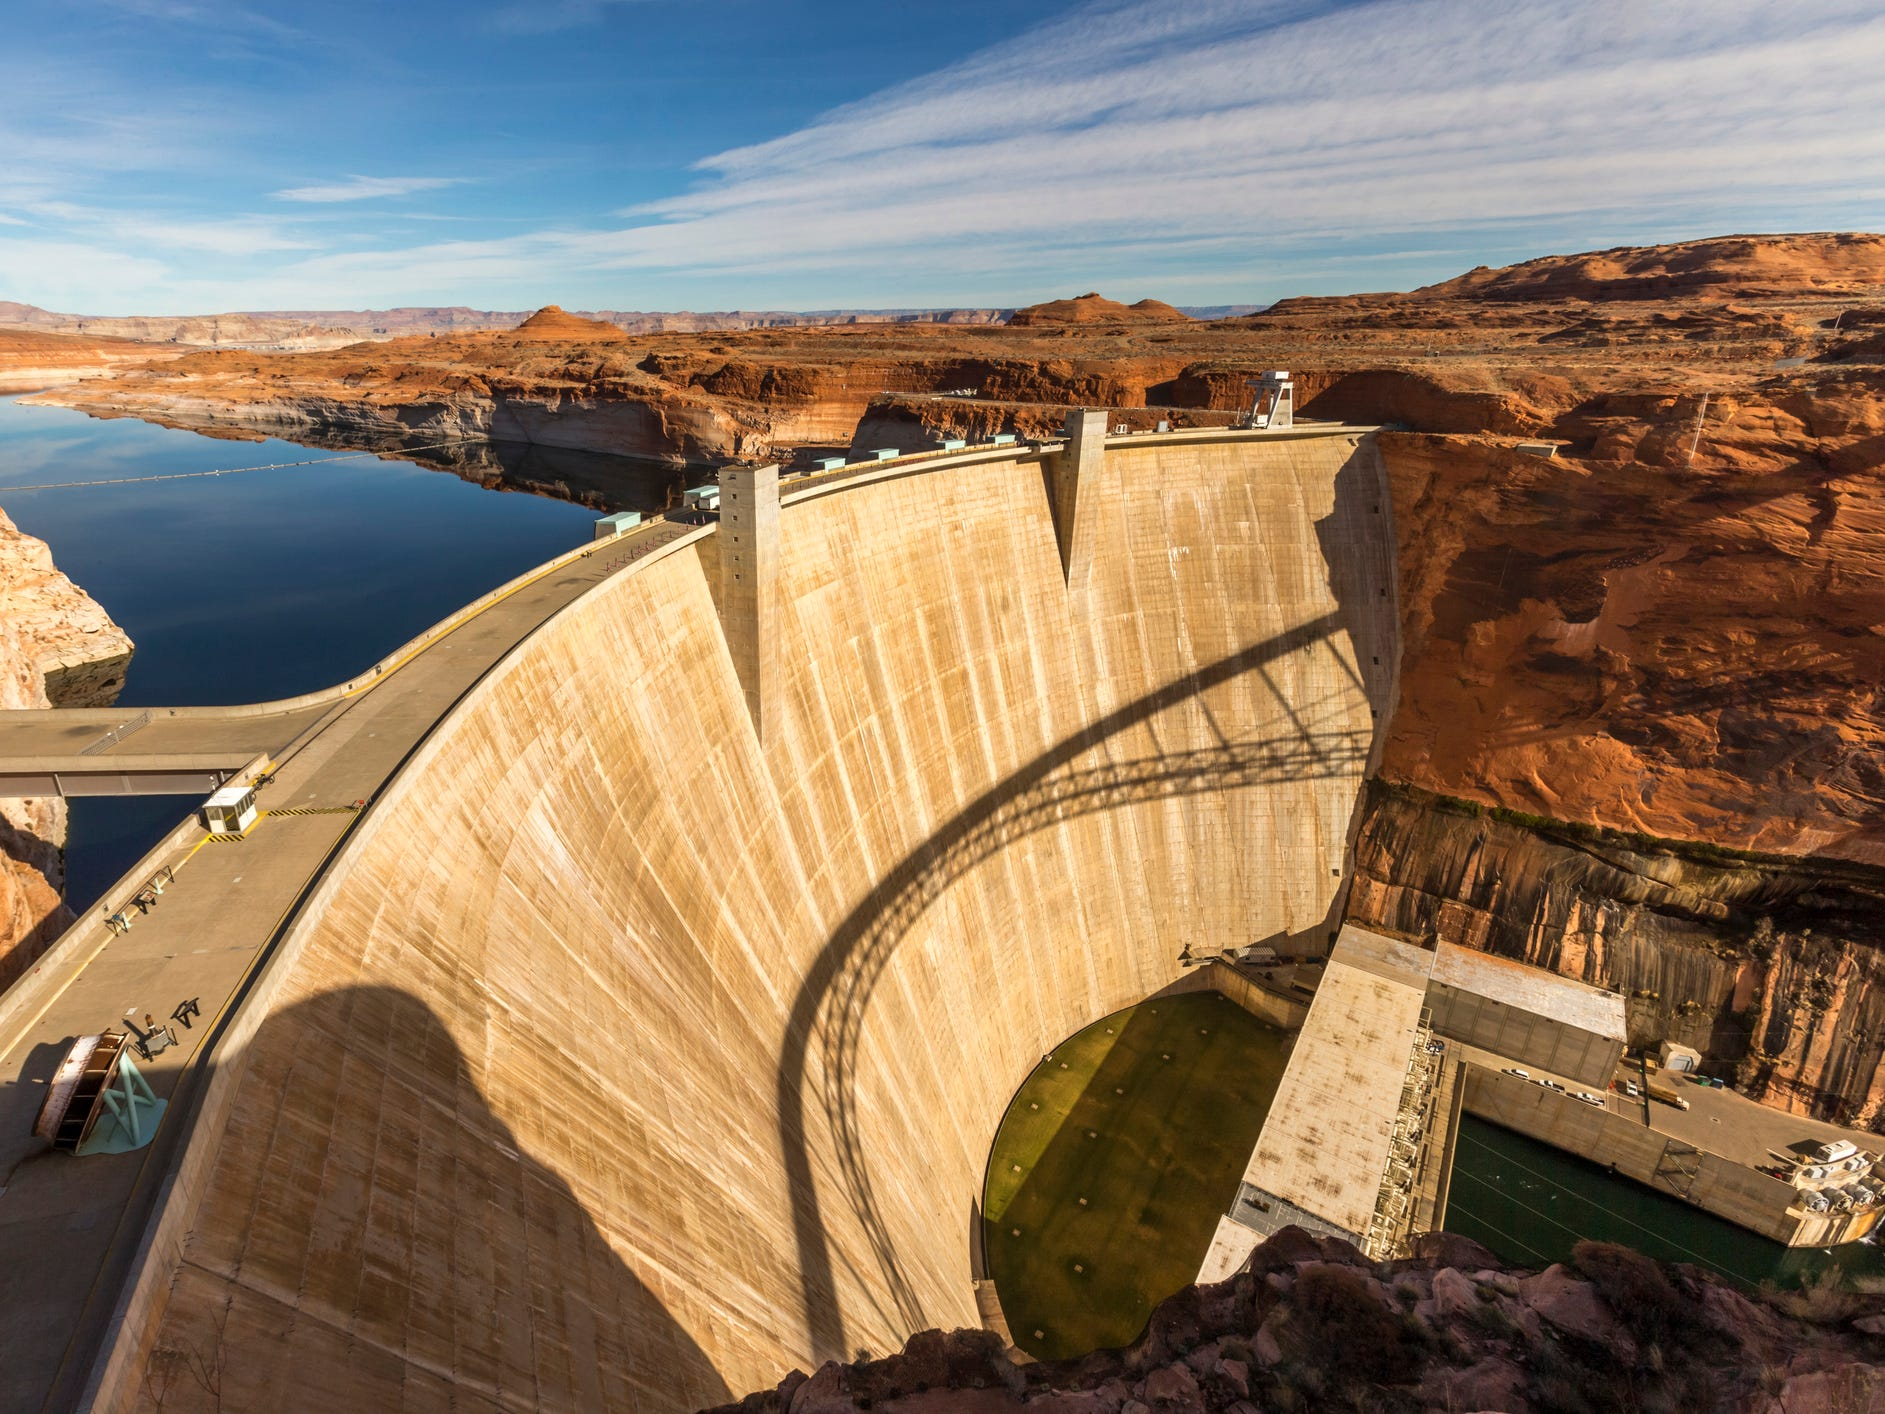 Glen Canyon Dam in Arizona.